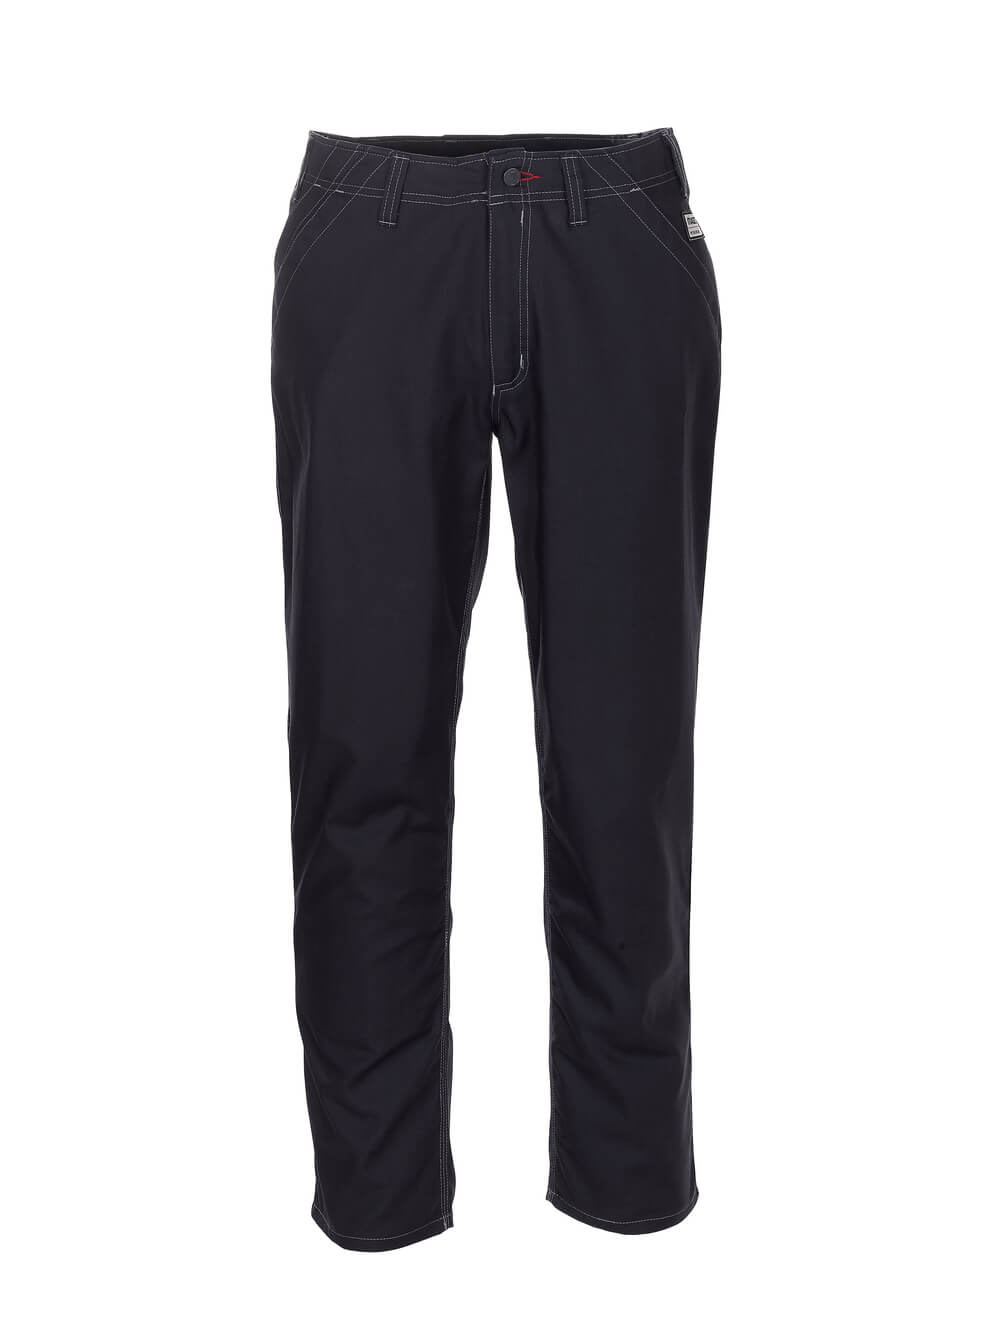 09279-154-09 Trousers - black